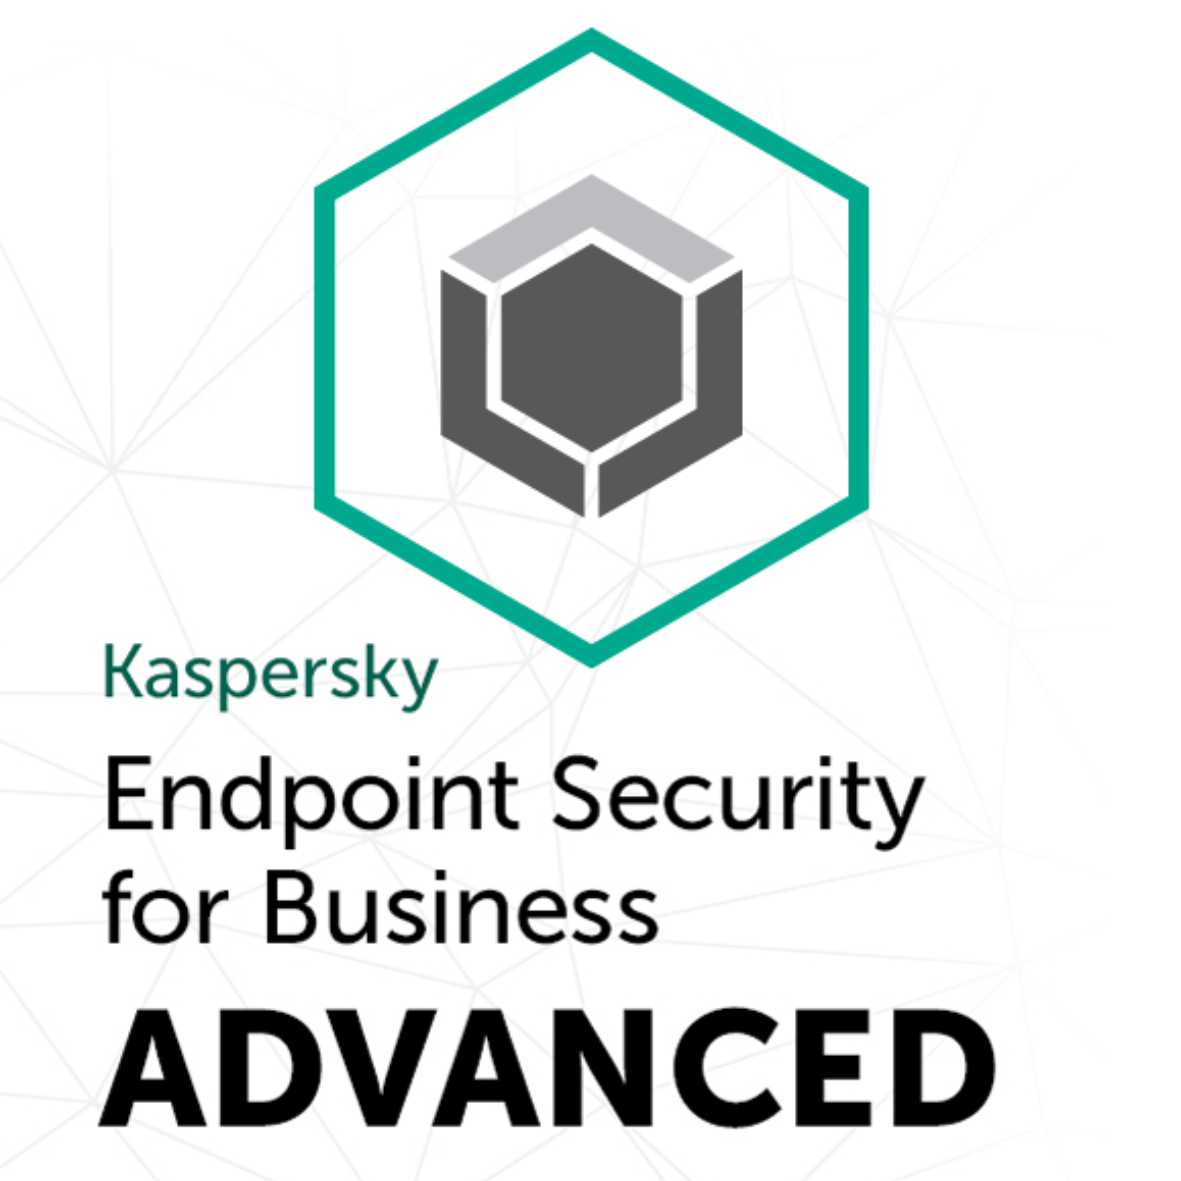 Kaspersky Endpoint Security for Business – Advanced